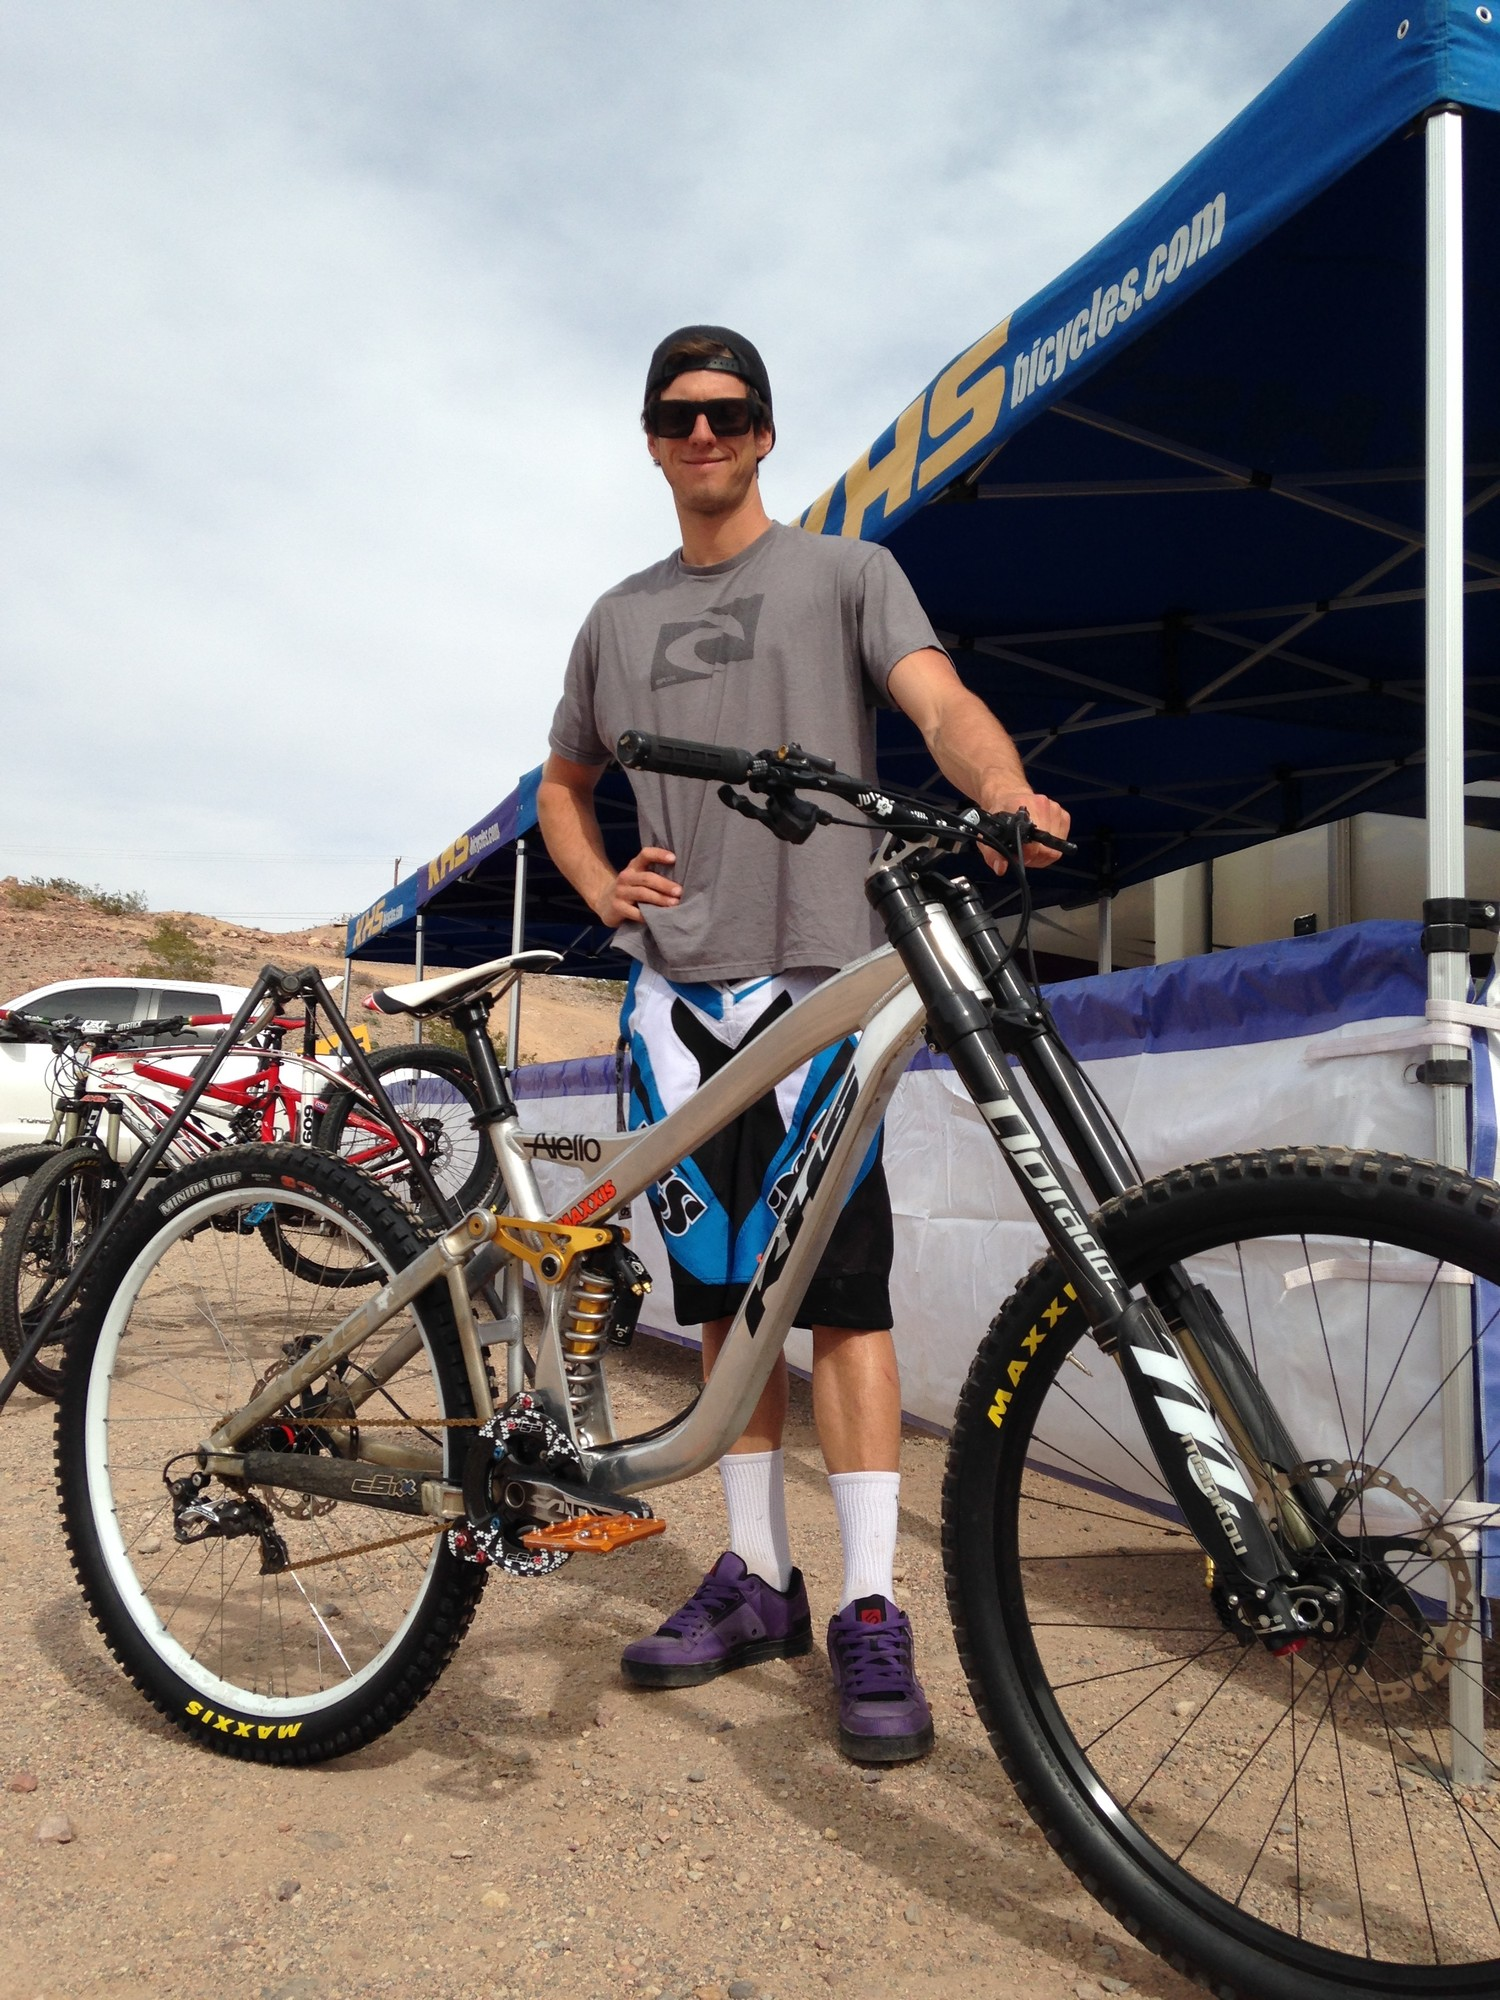 Prototype KHS 29er DH Bike Spotted at Bootleg Canyon - Mountain ...